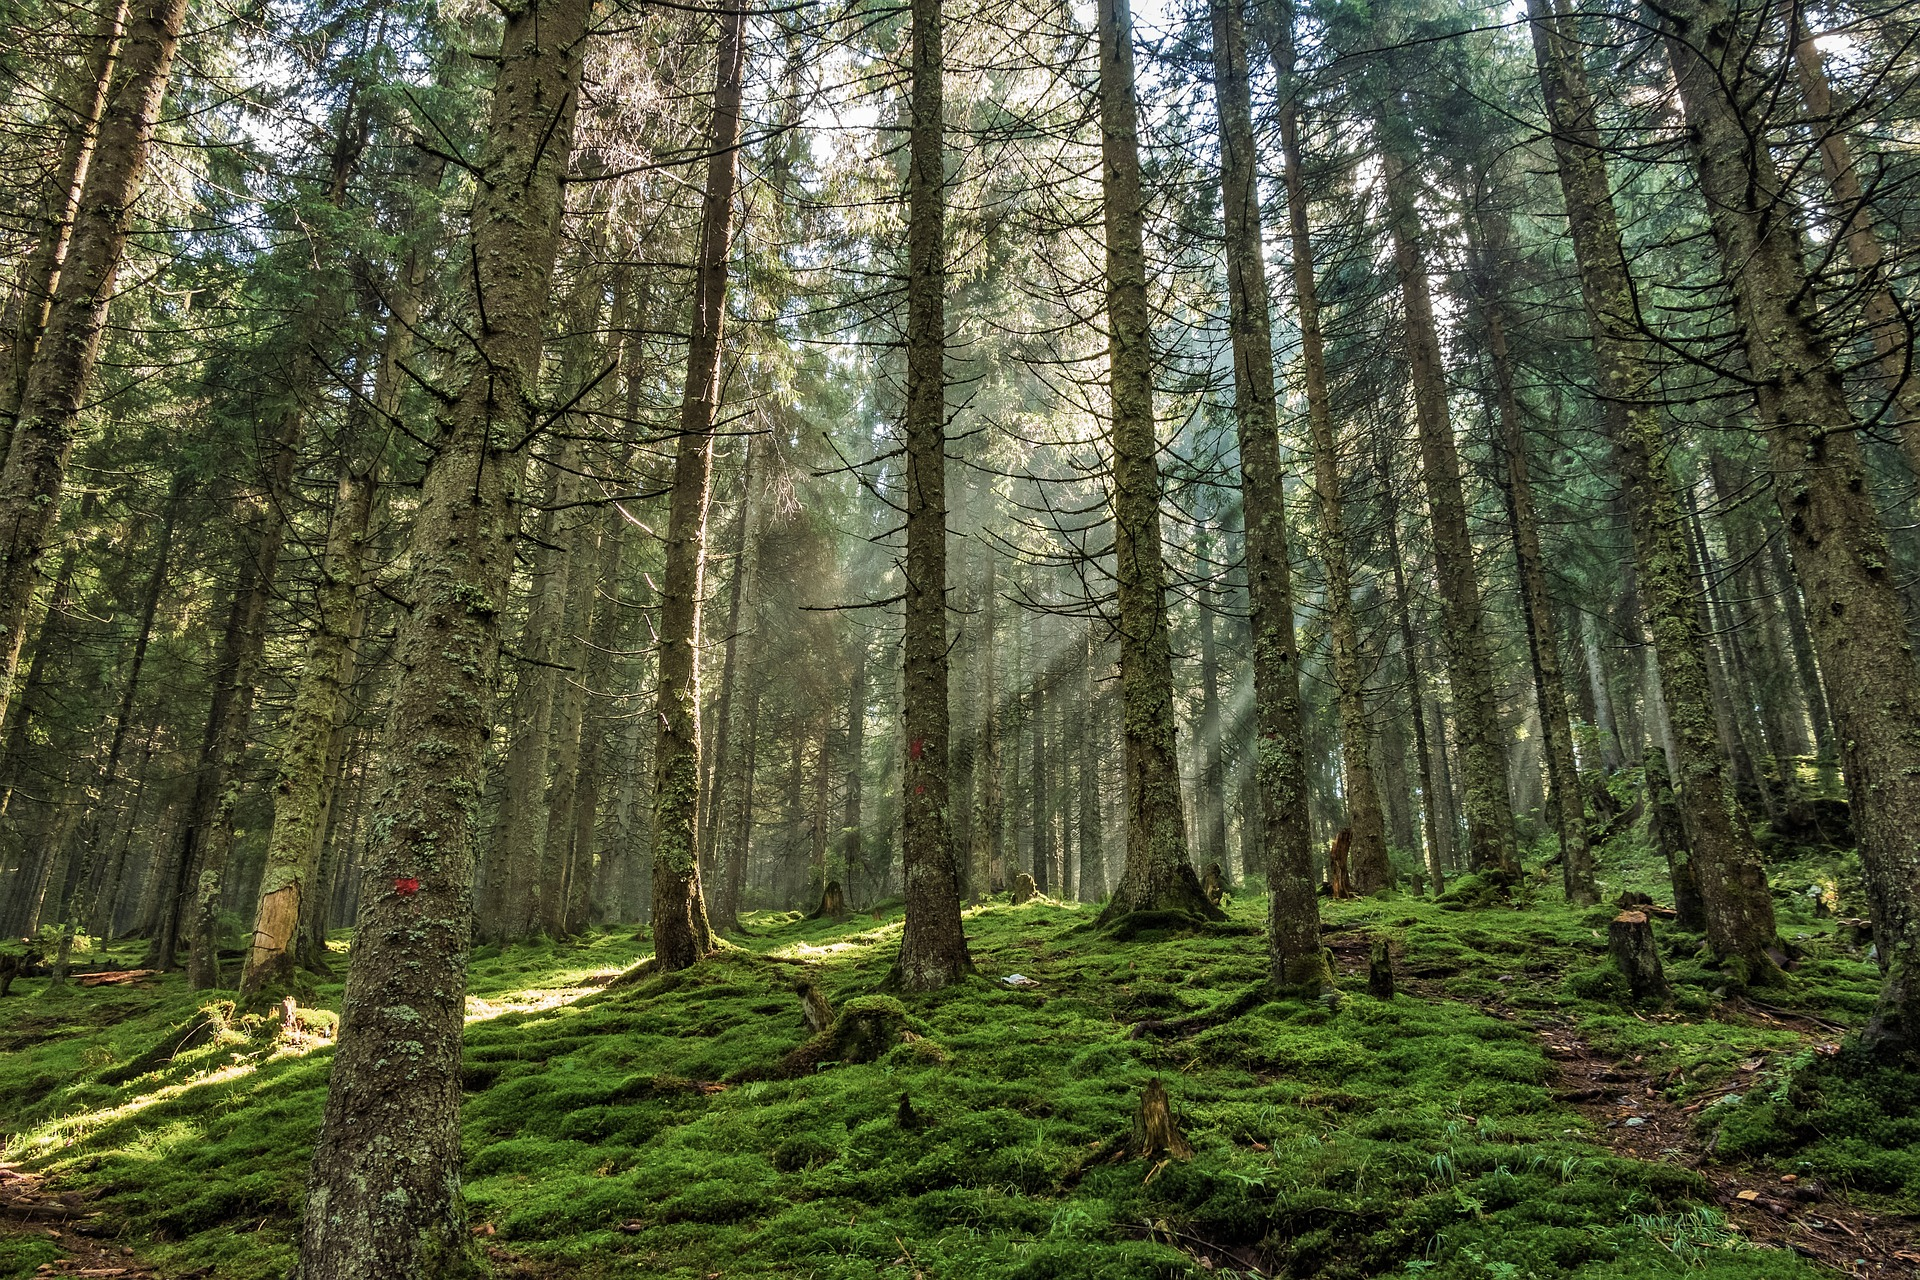 forest-967625_1920